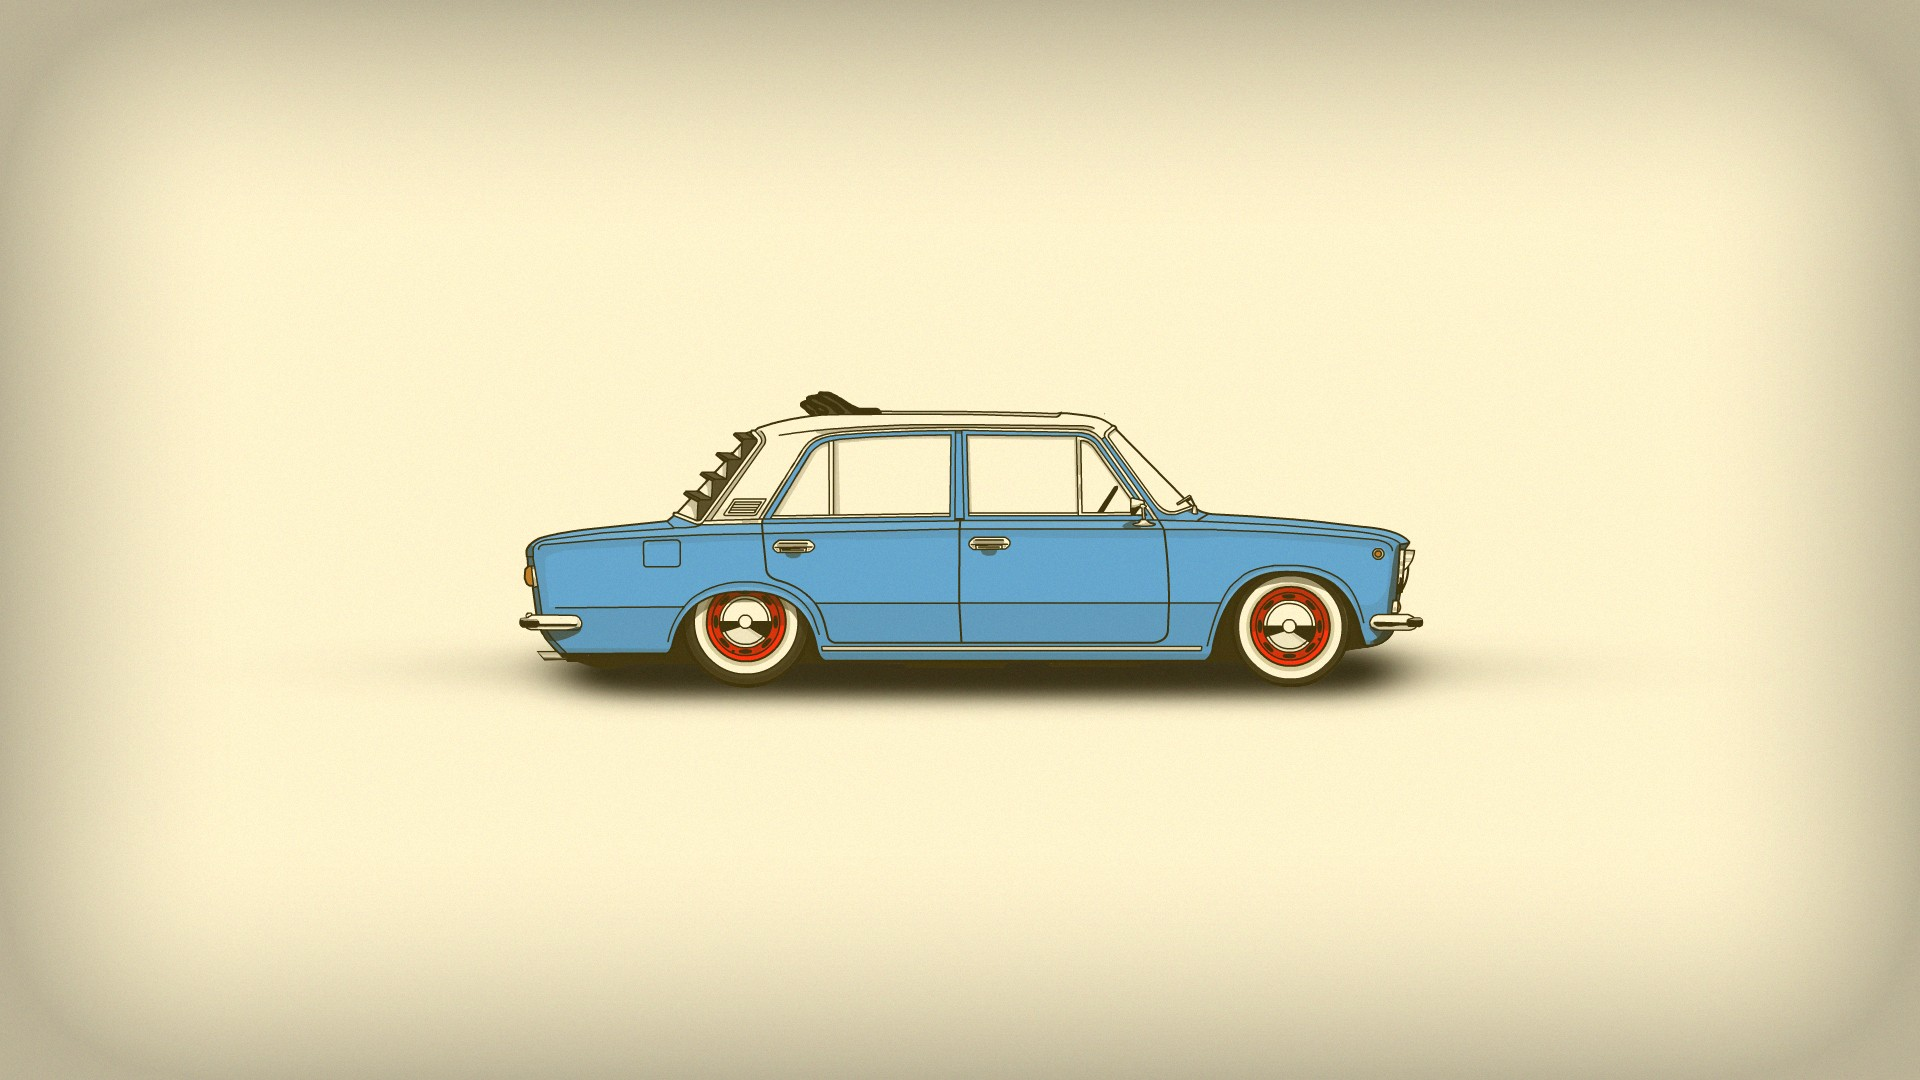 car minimalism simple art, hd artist, 4k wallpapers, images